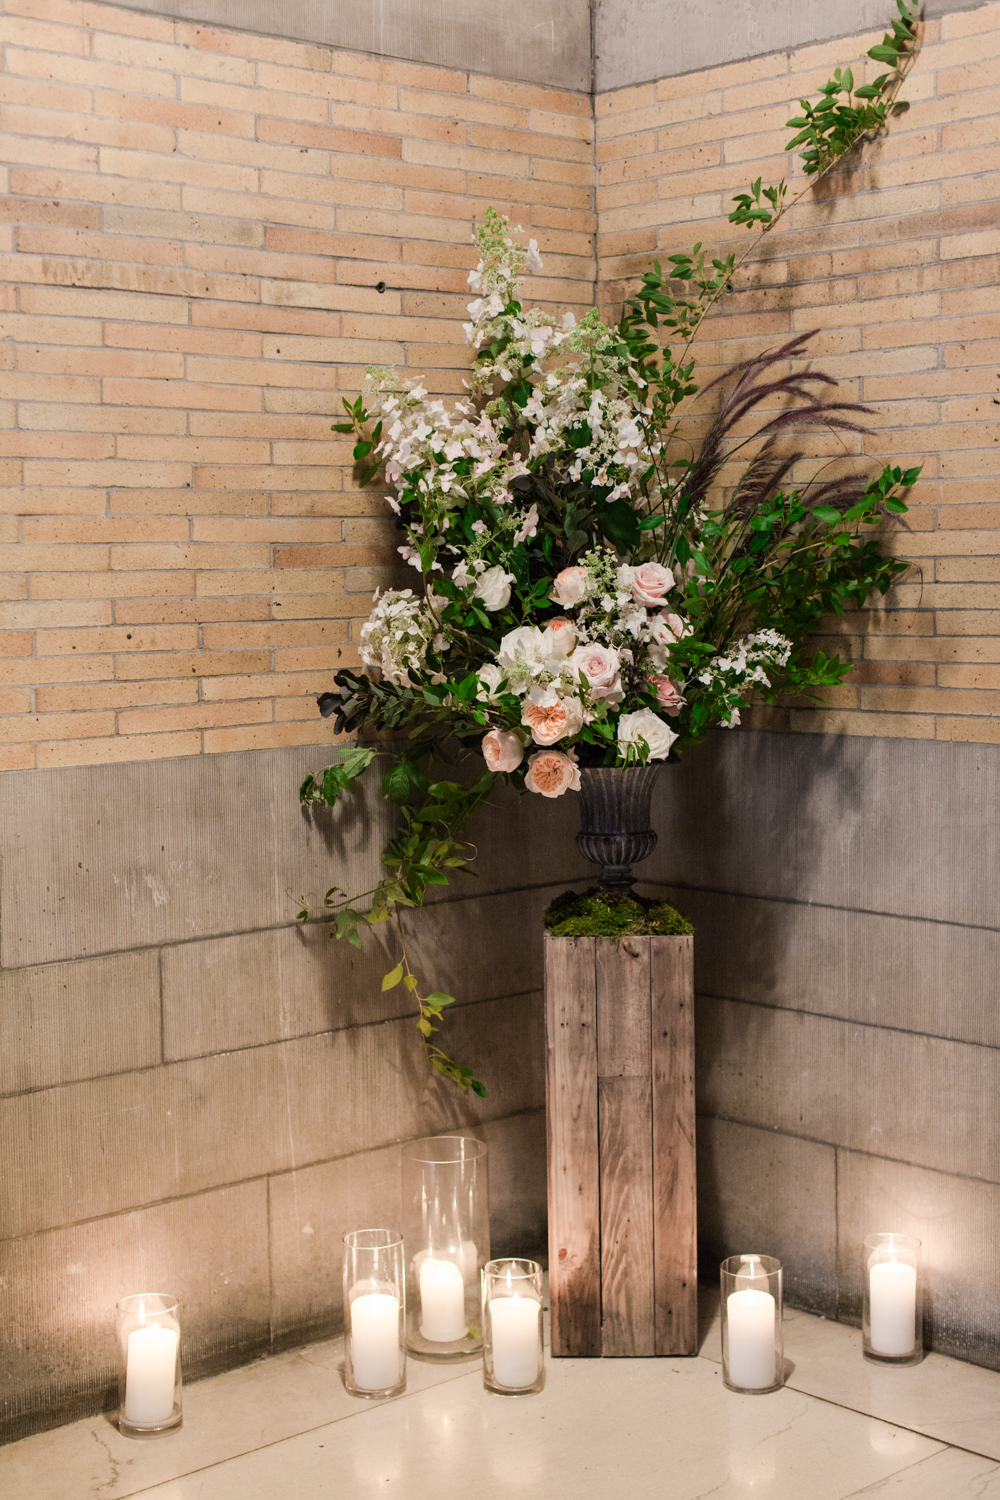 Old World NYC Wedding at the Highline Hotel - Flowers by Denise Fasanello Flowers - Photo by Heather Waraska 15.jpg